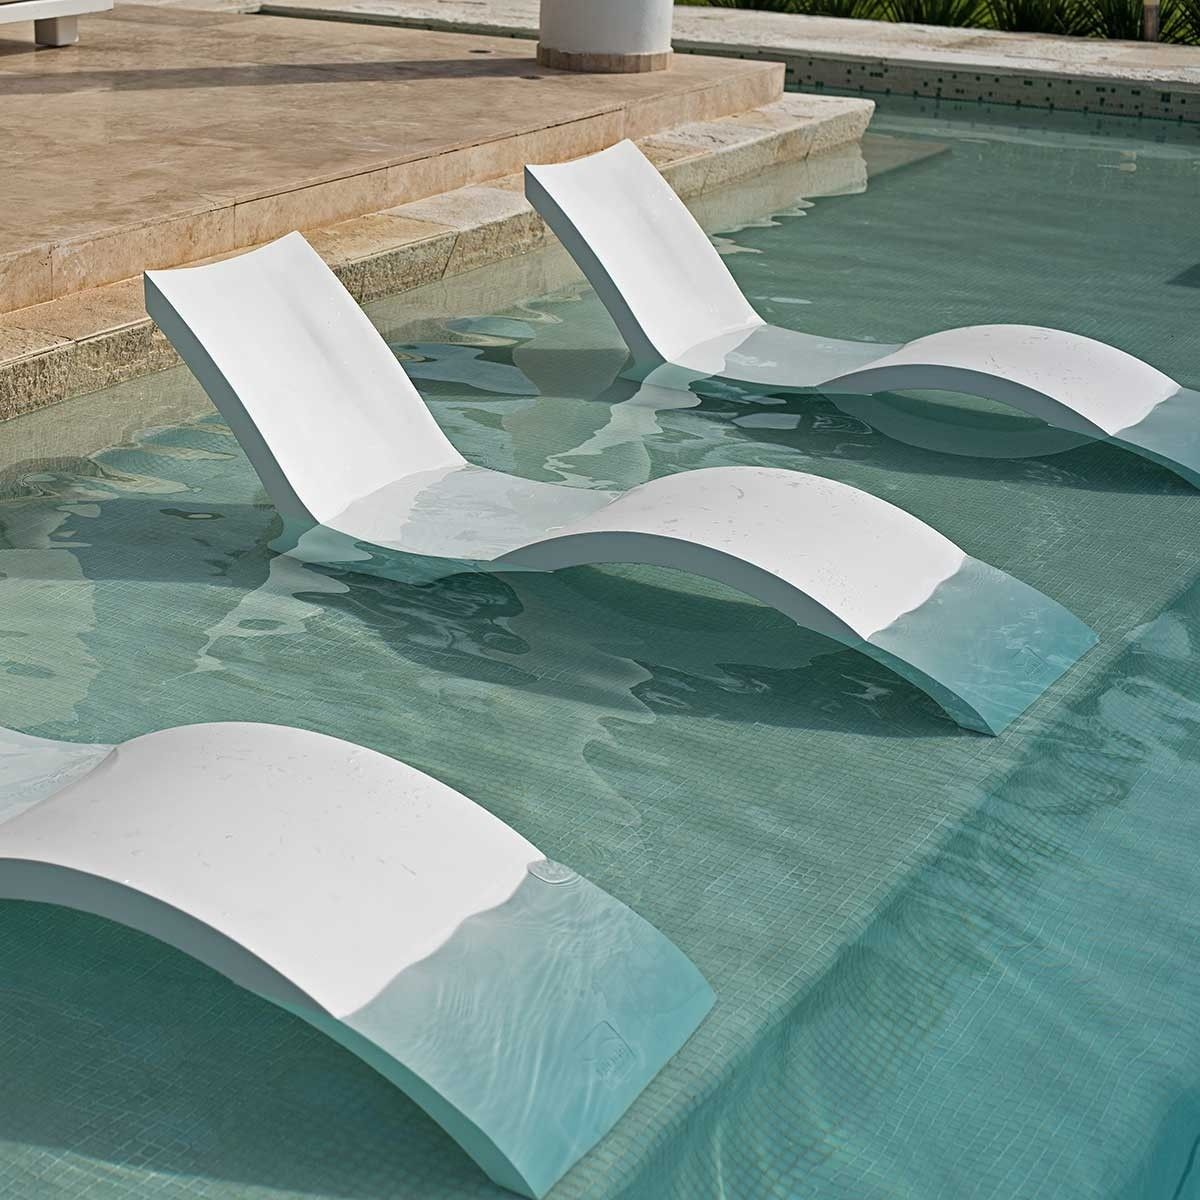 In Pool Chaise Deep Ledge Lounger Pool Chaise Tanning Ledge Pool Pool Designs